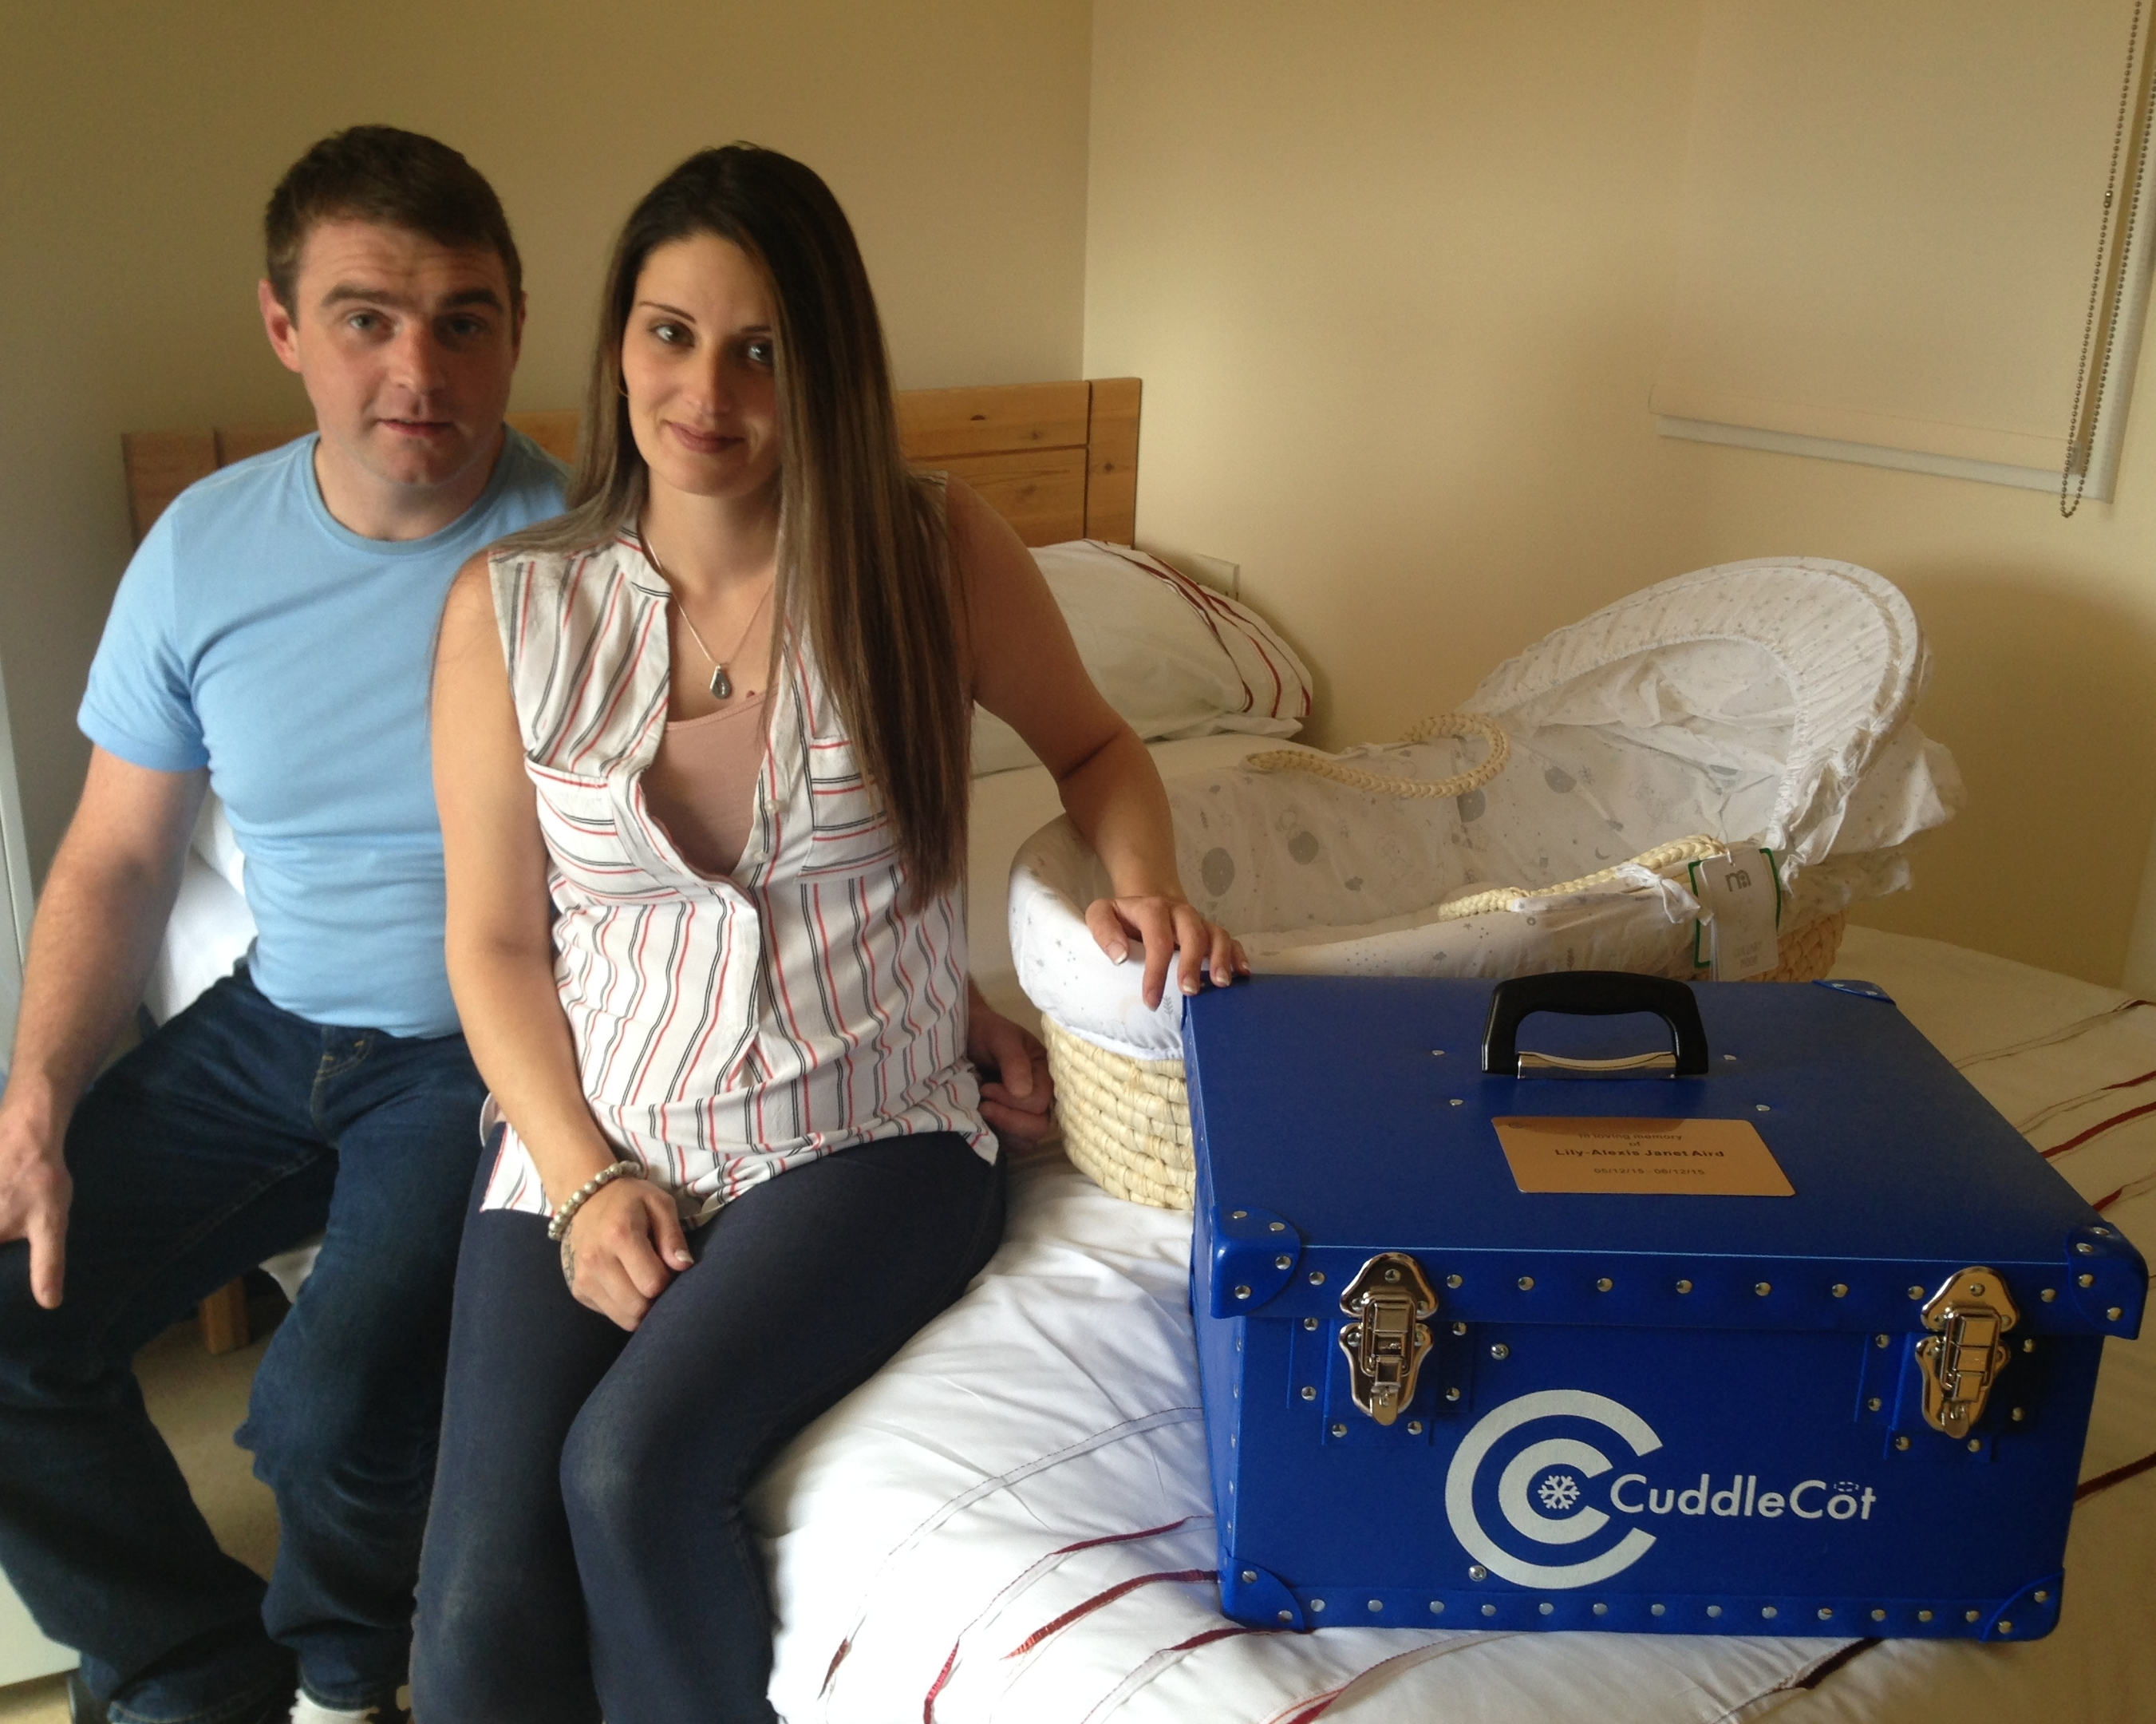 David and Emma with the cuddle cot and moses basket